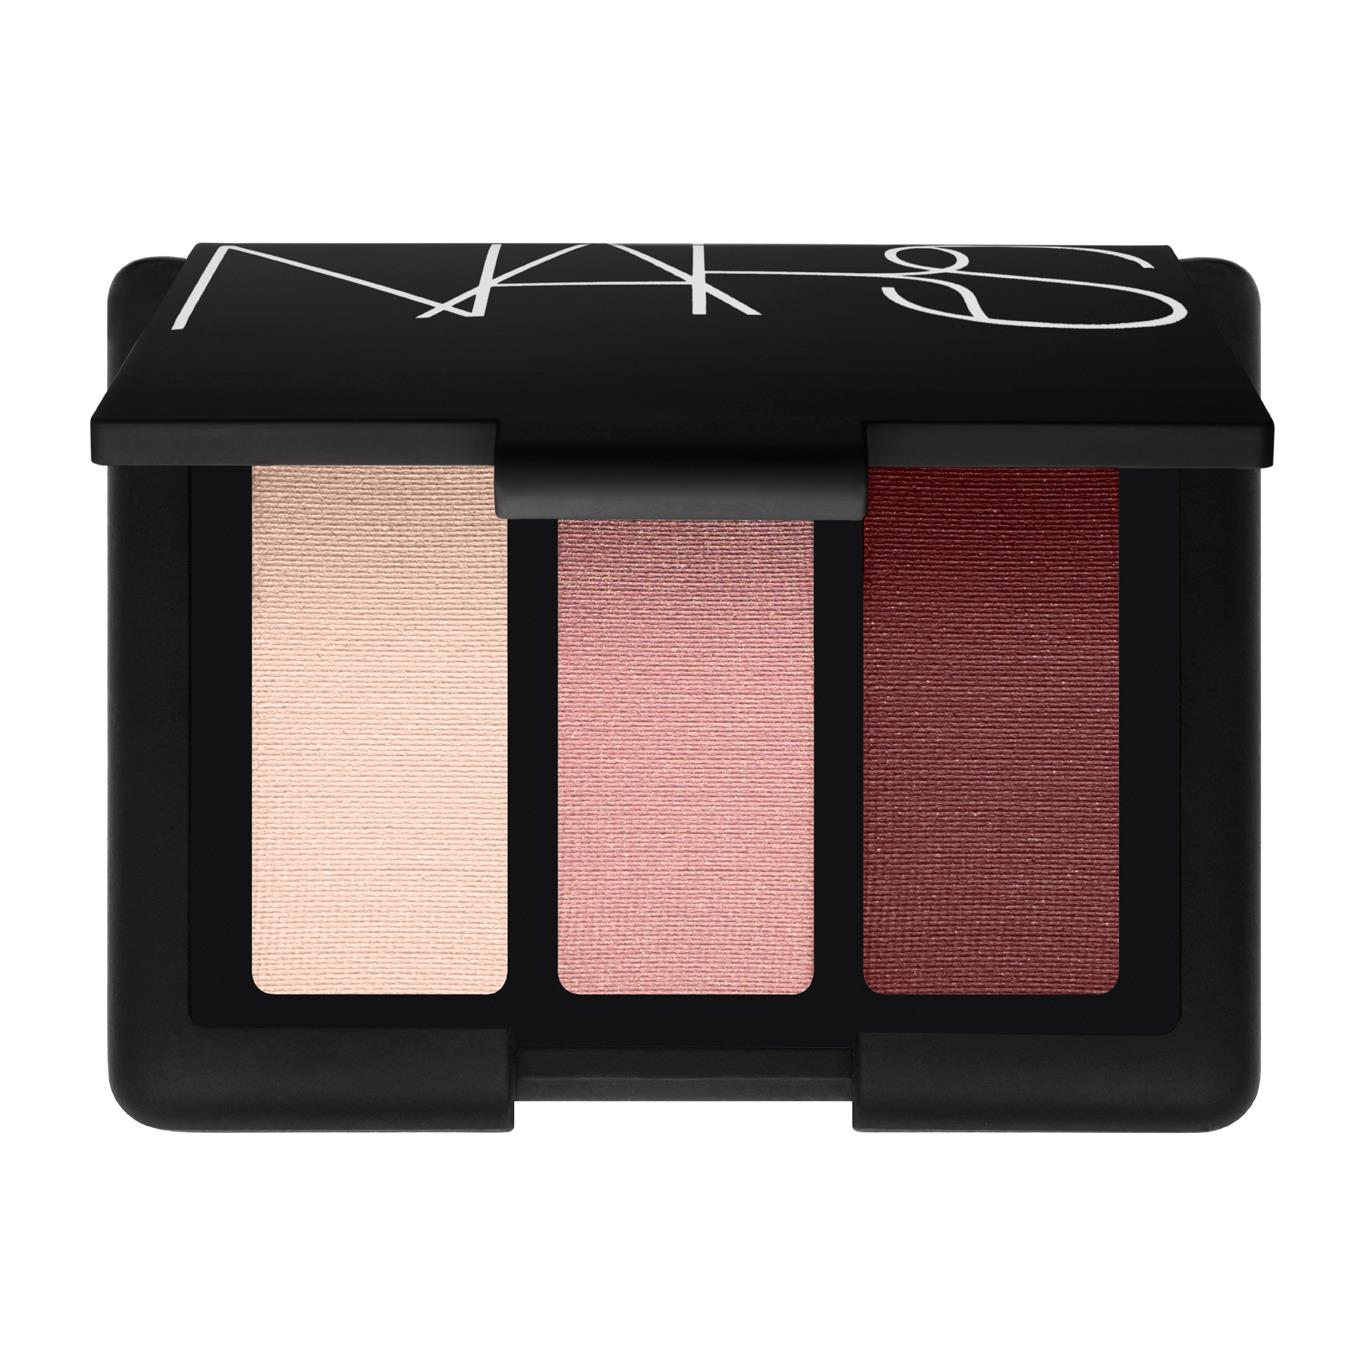 NARS Pink Shadows.jpg